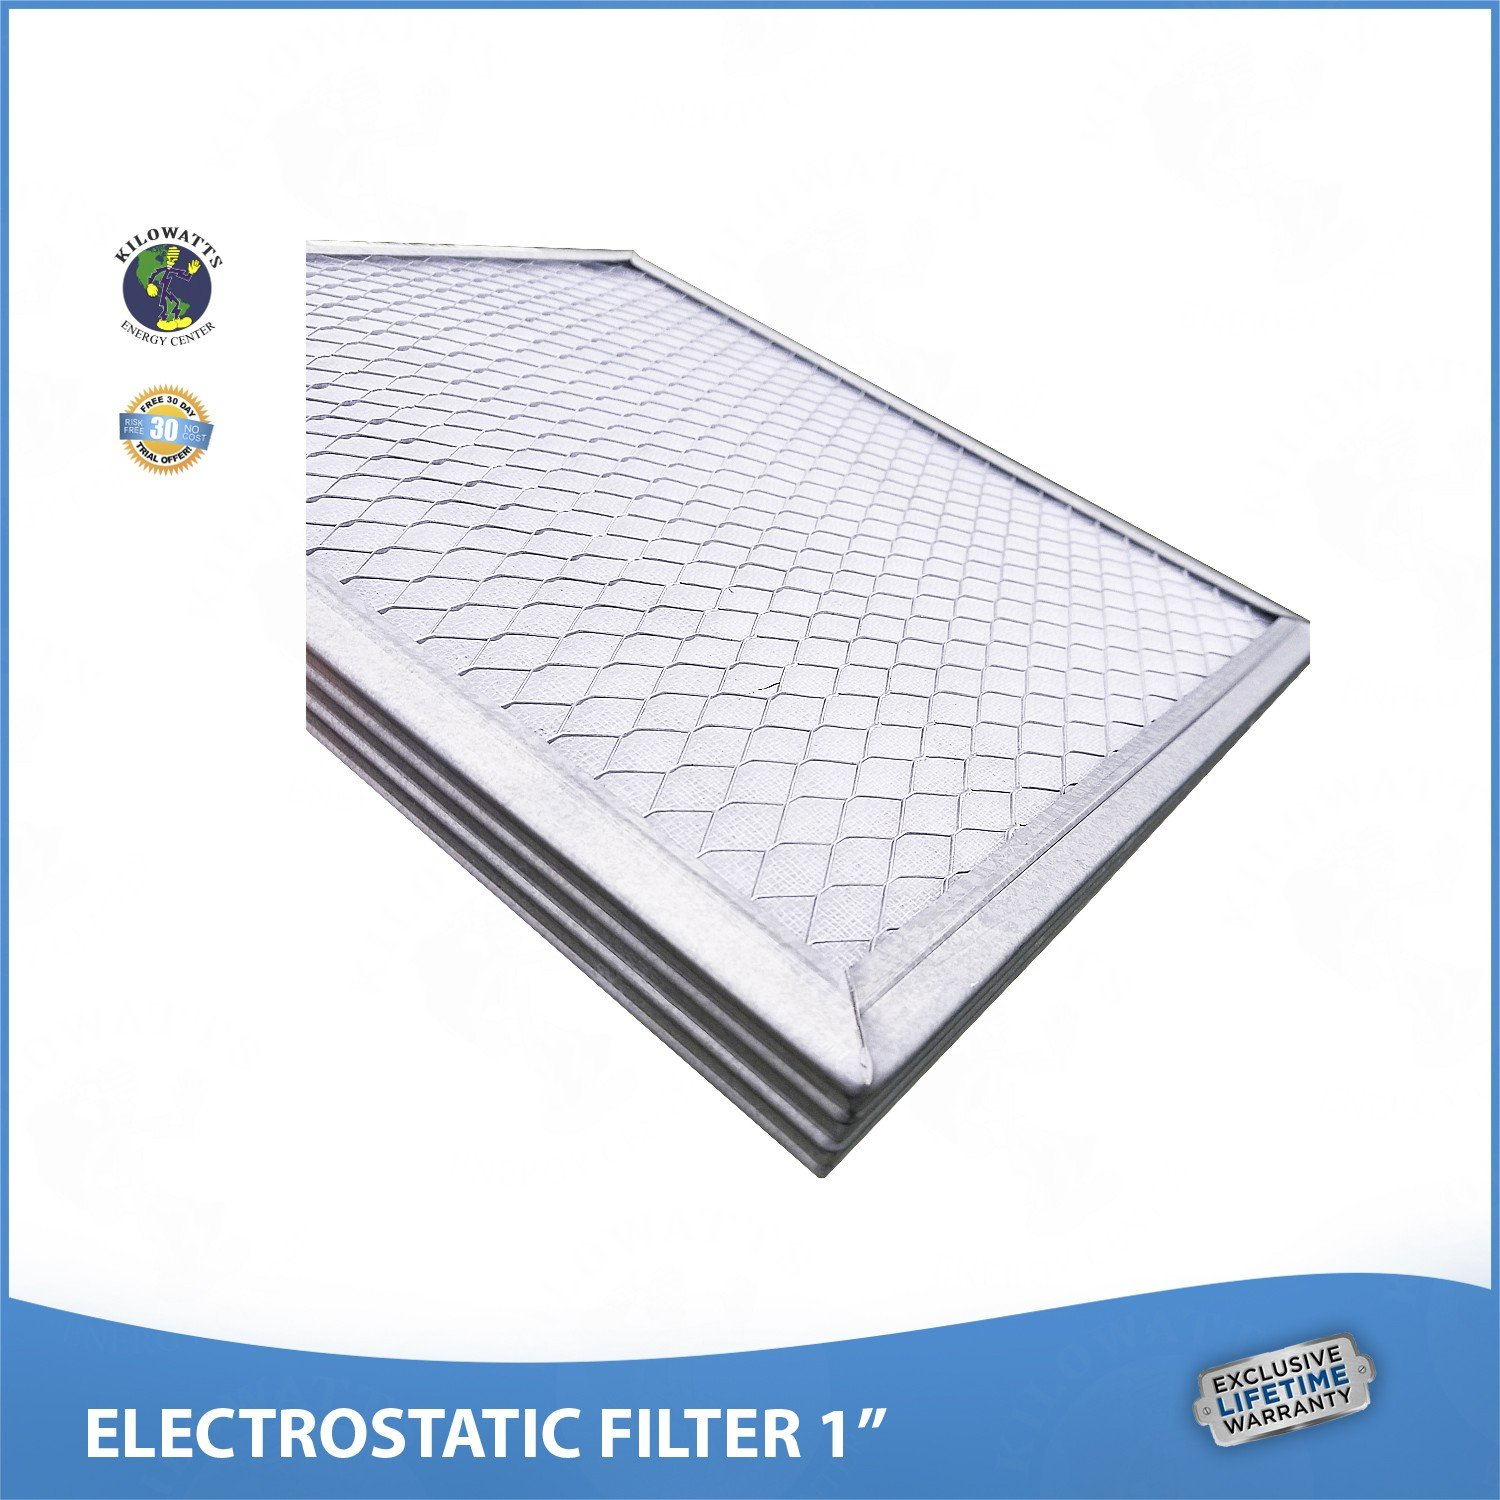 20x25x1 Lifetime Air Filter - Electrostatic Washable Permanent A/C Furnace Air Filter. by Kilowatts Energy Center (Image #5)